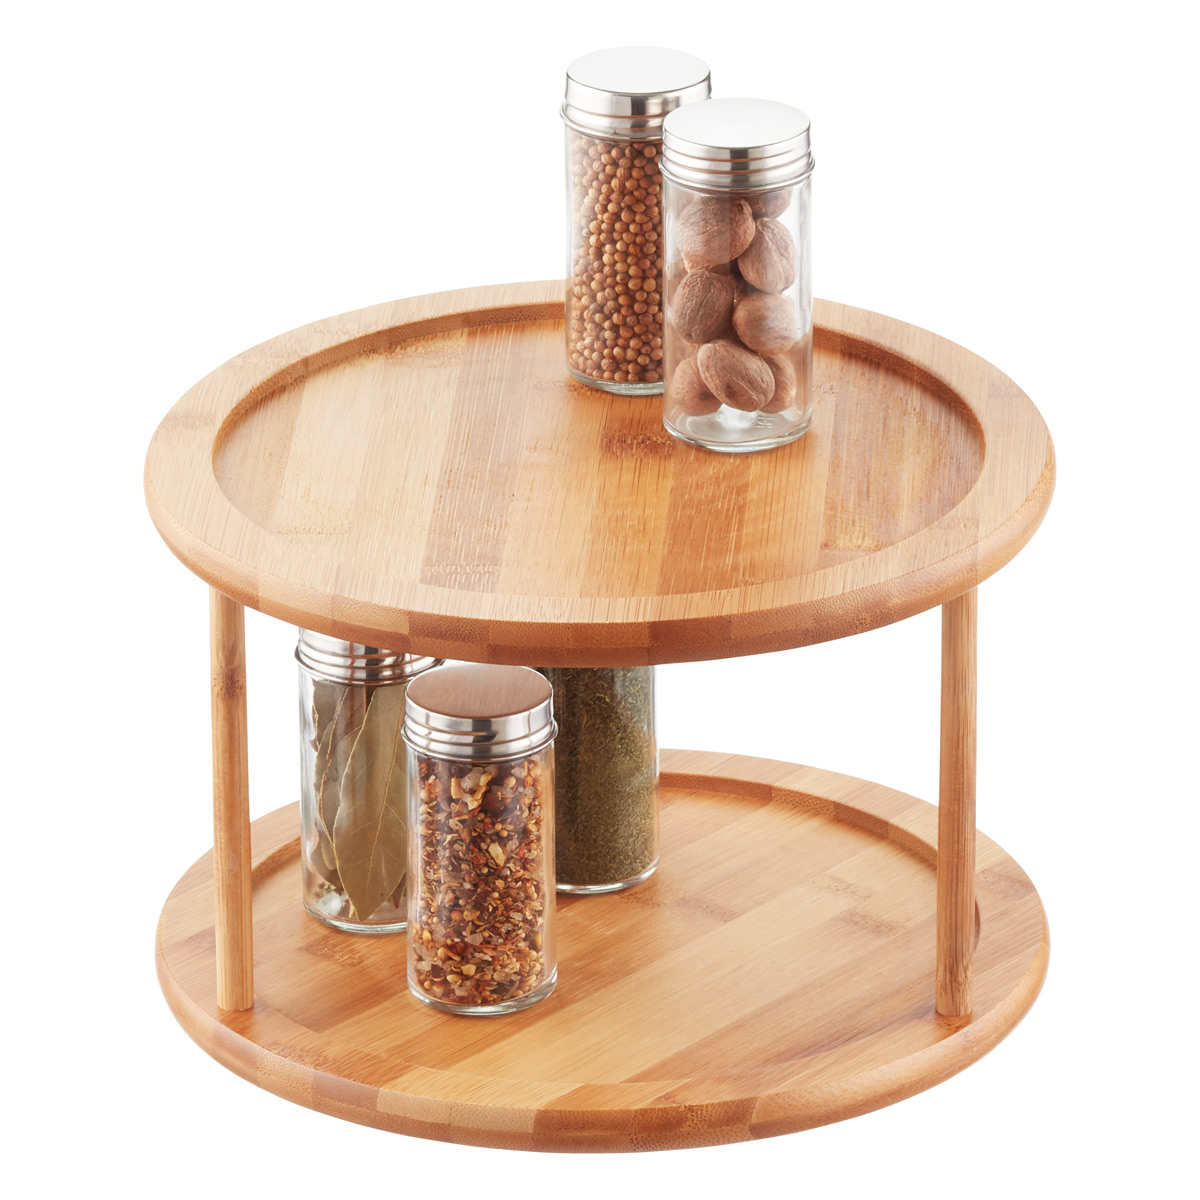 2-Tier Bamboo Lazy Susan